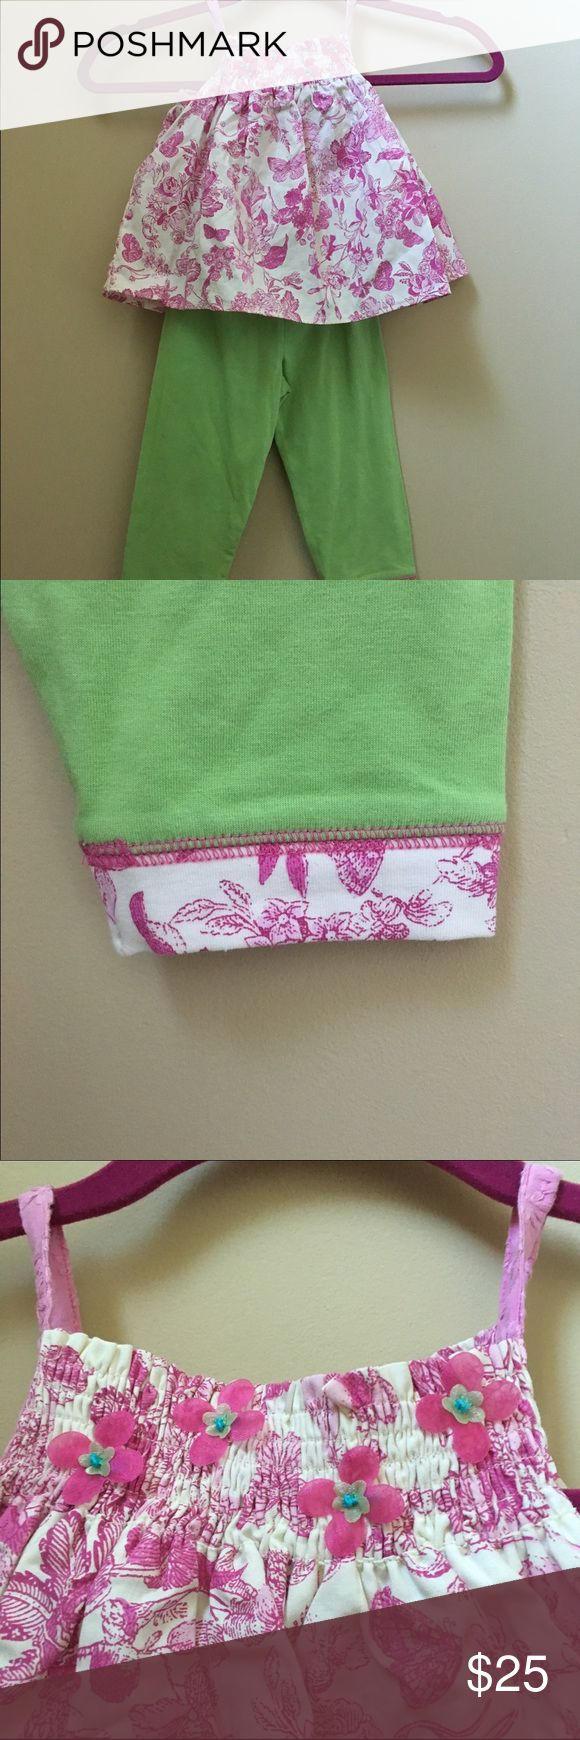 Boutique Baby Lulu by 2 piece, green/pink Boutique brand Baby Lulu by Erin Murphy 2 piece set, pink floral top, lime green pants with matching trim, cotton, size 2T, new Baby Lulu Matching Sets